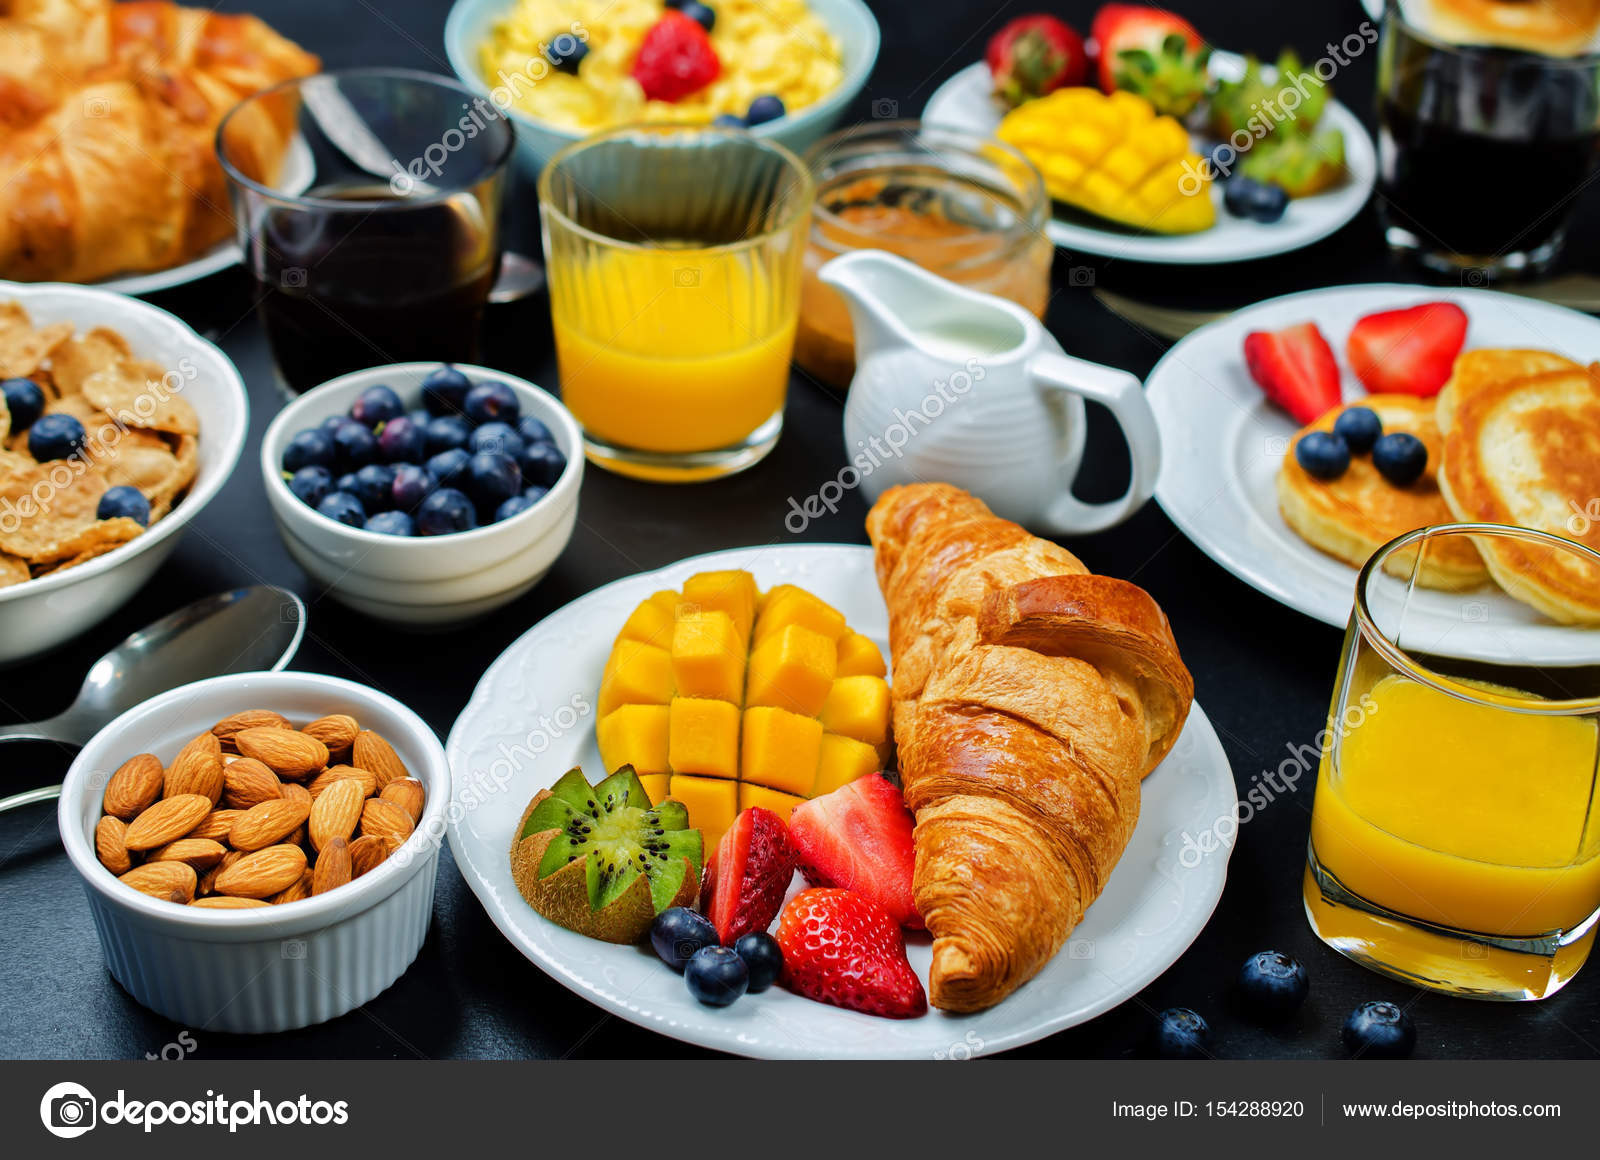 Breakfast table setting with flakes, juice, croissants, pancakes ...